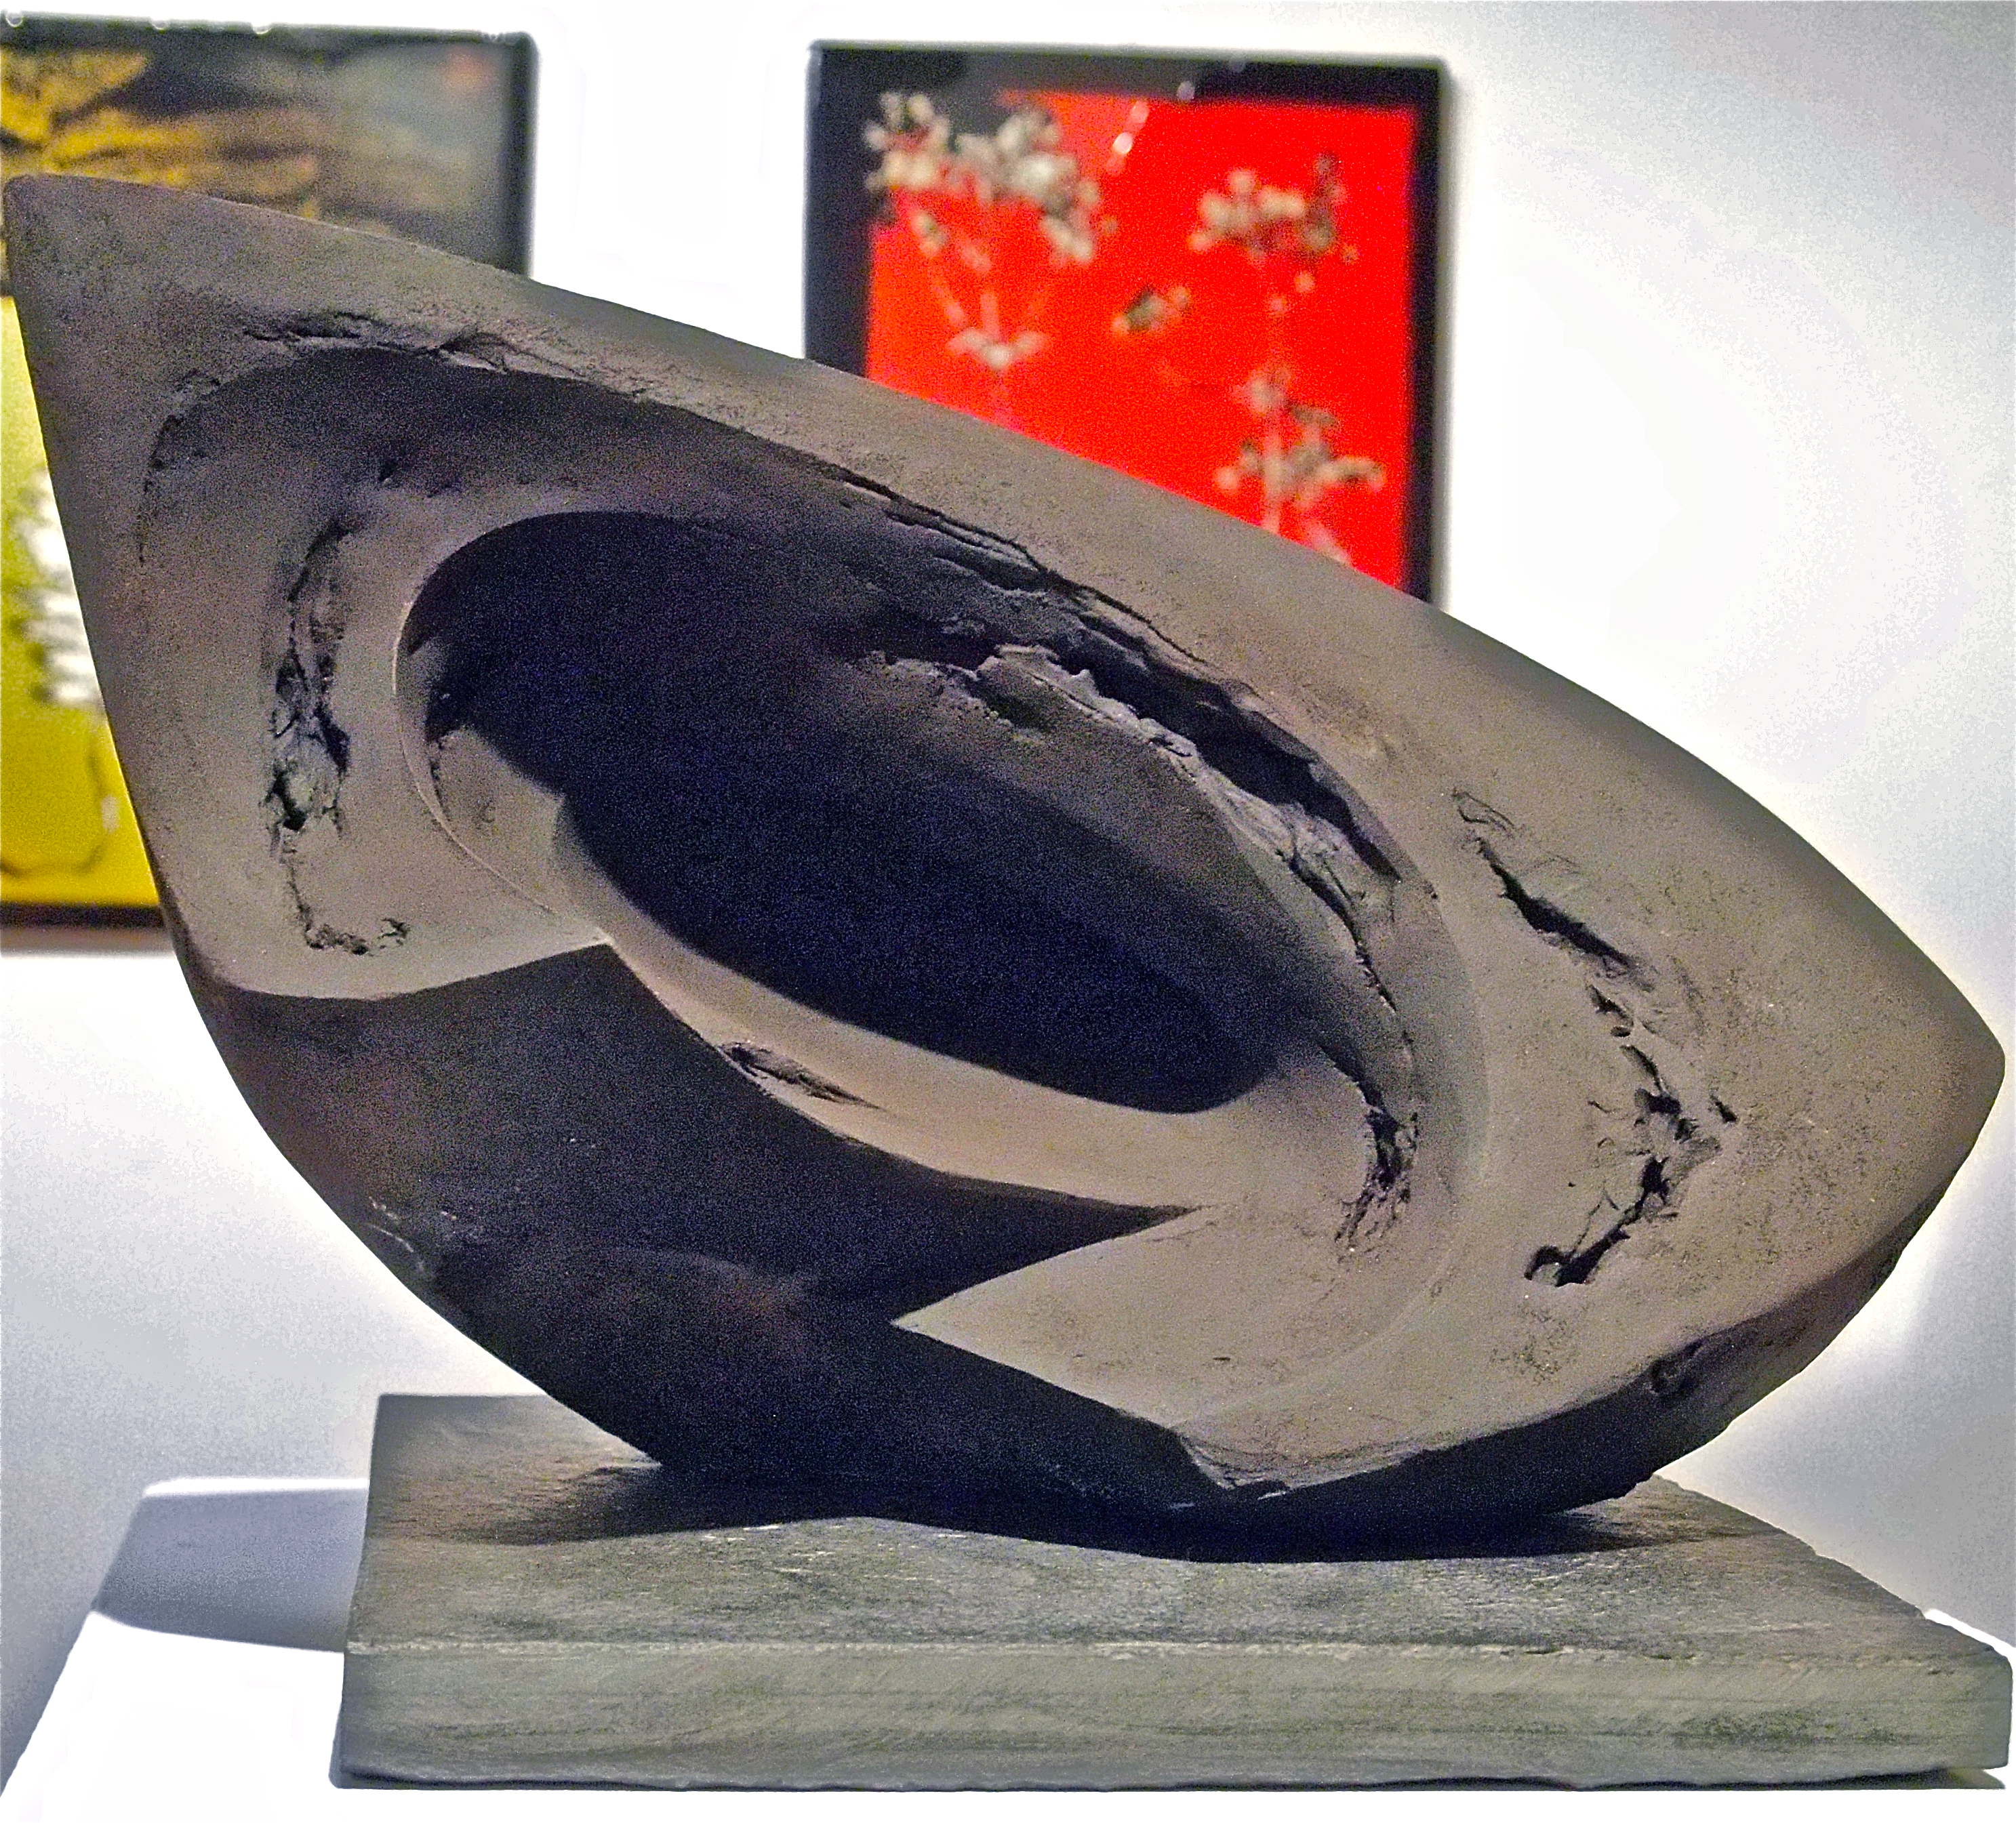 The Edge V, 27cm H x 46cm L x 26cm D, £1300